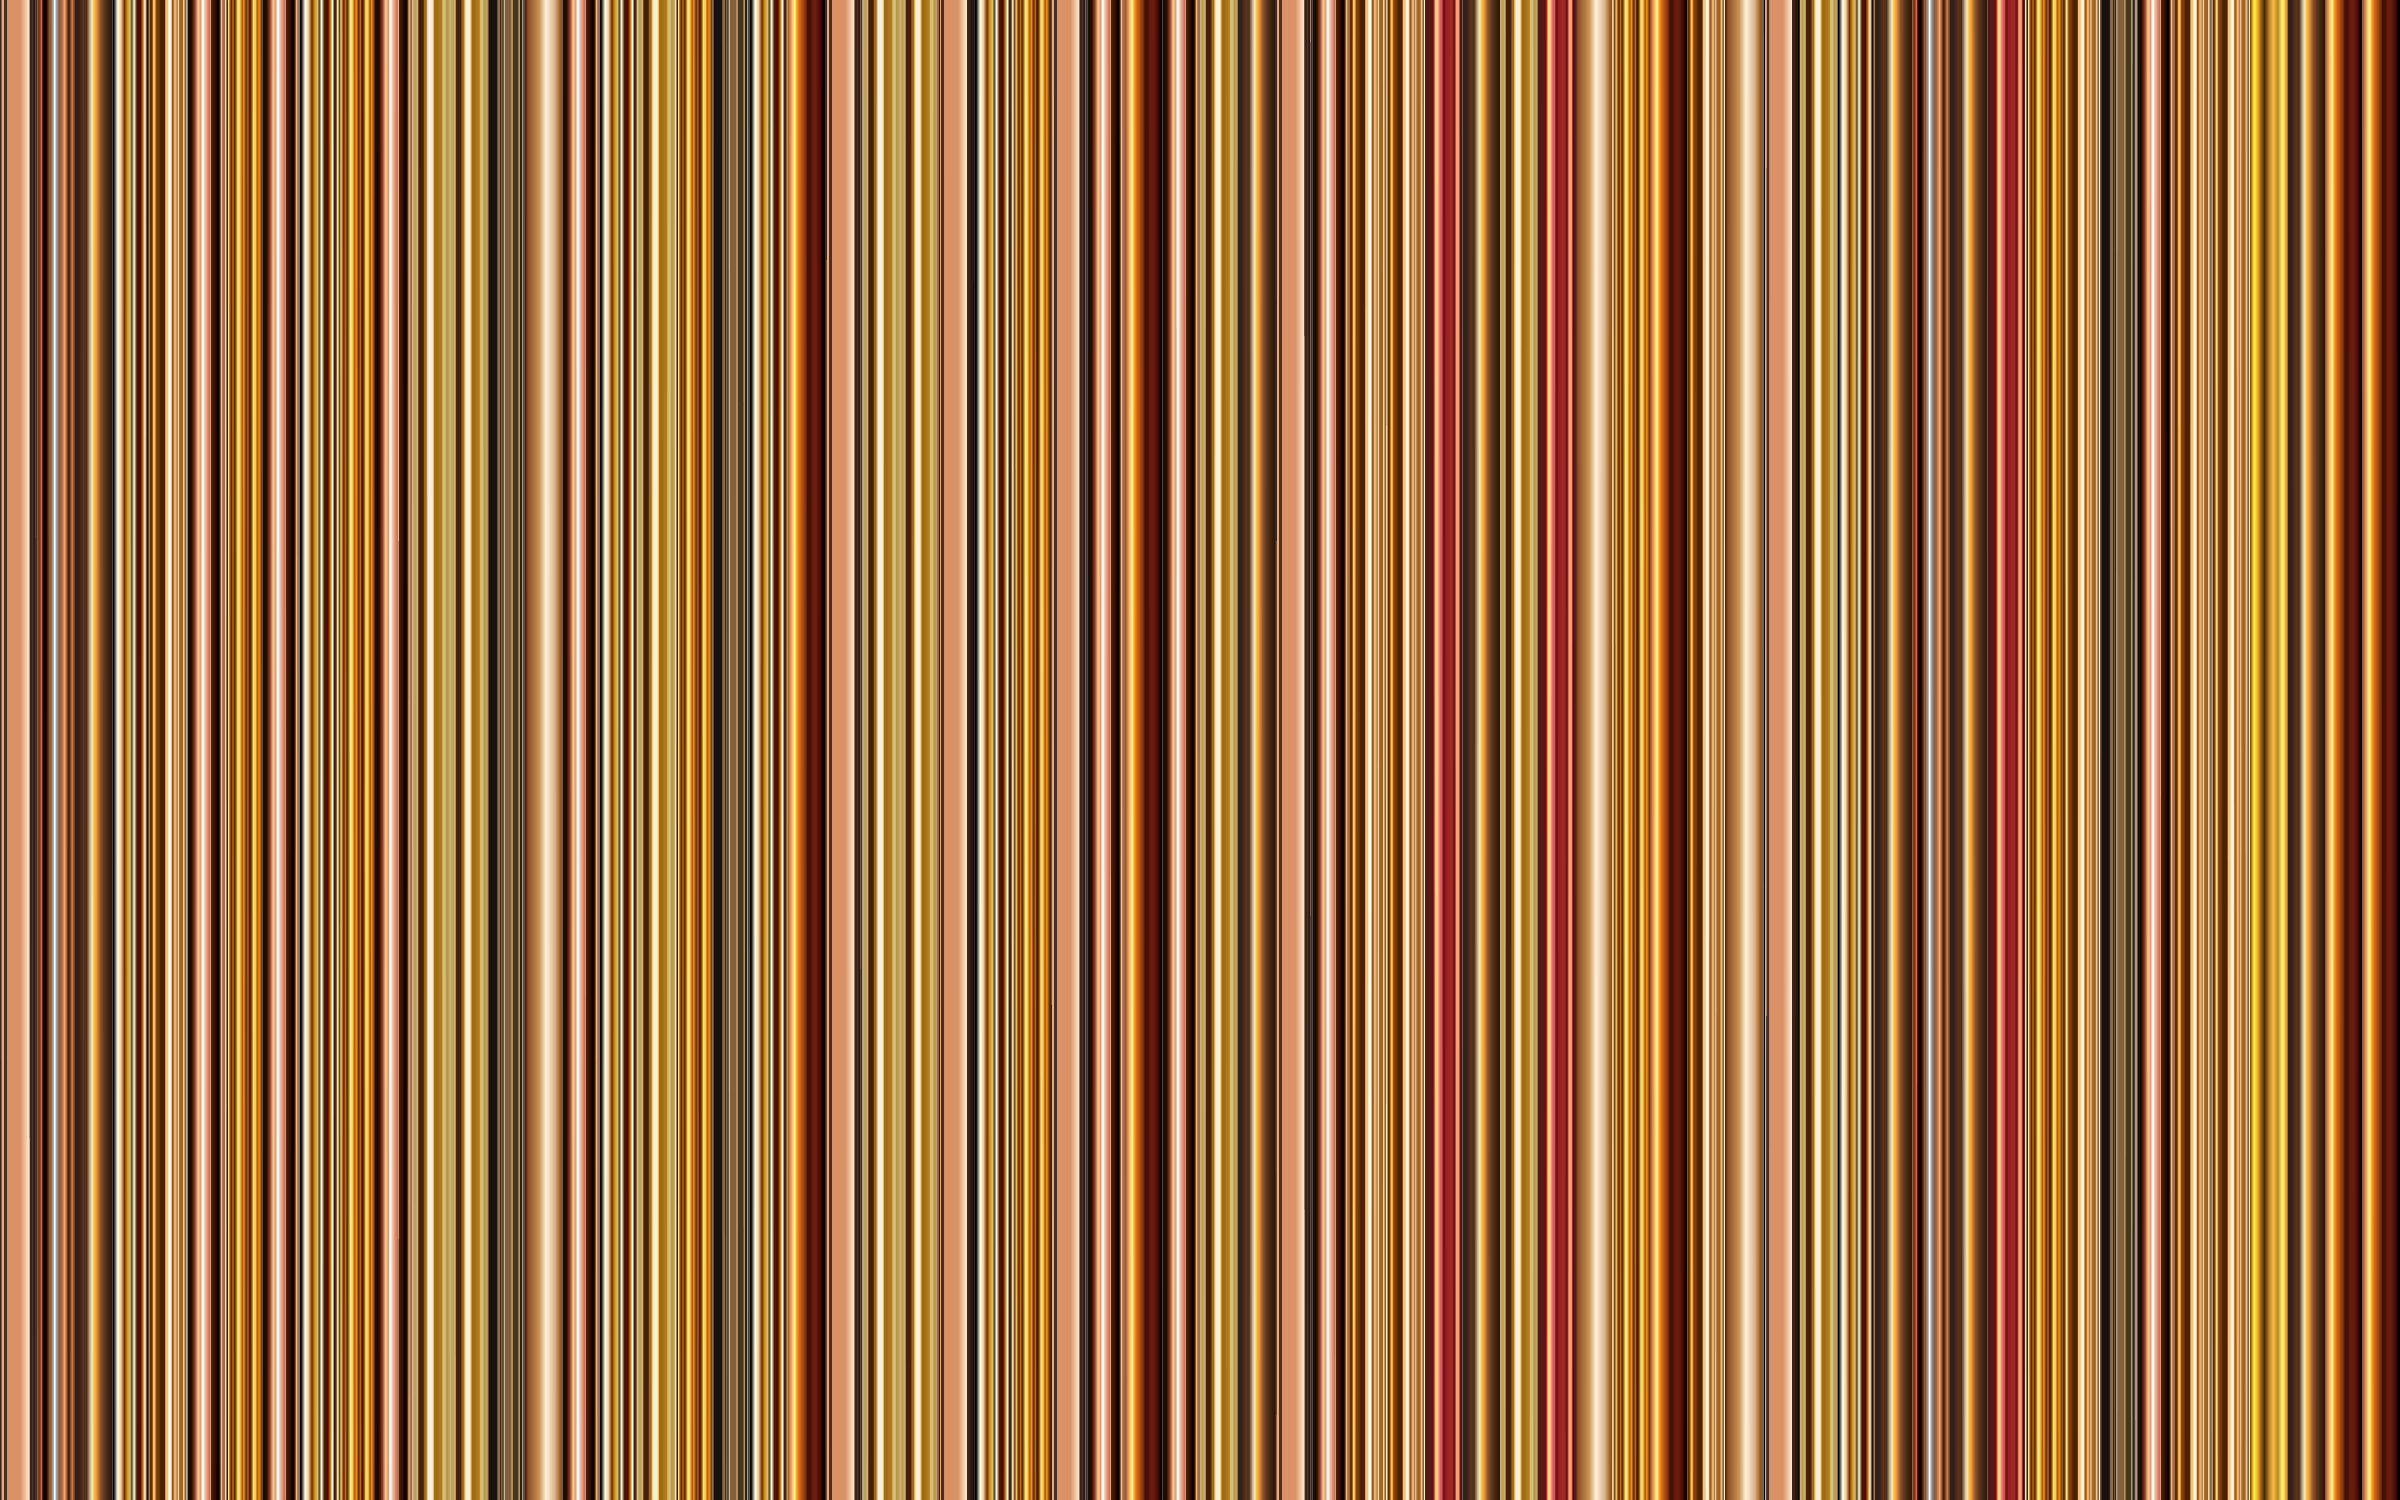 Vibrant Vertical Stripes 11 by GDJ